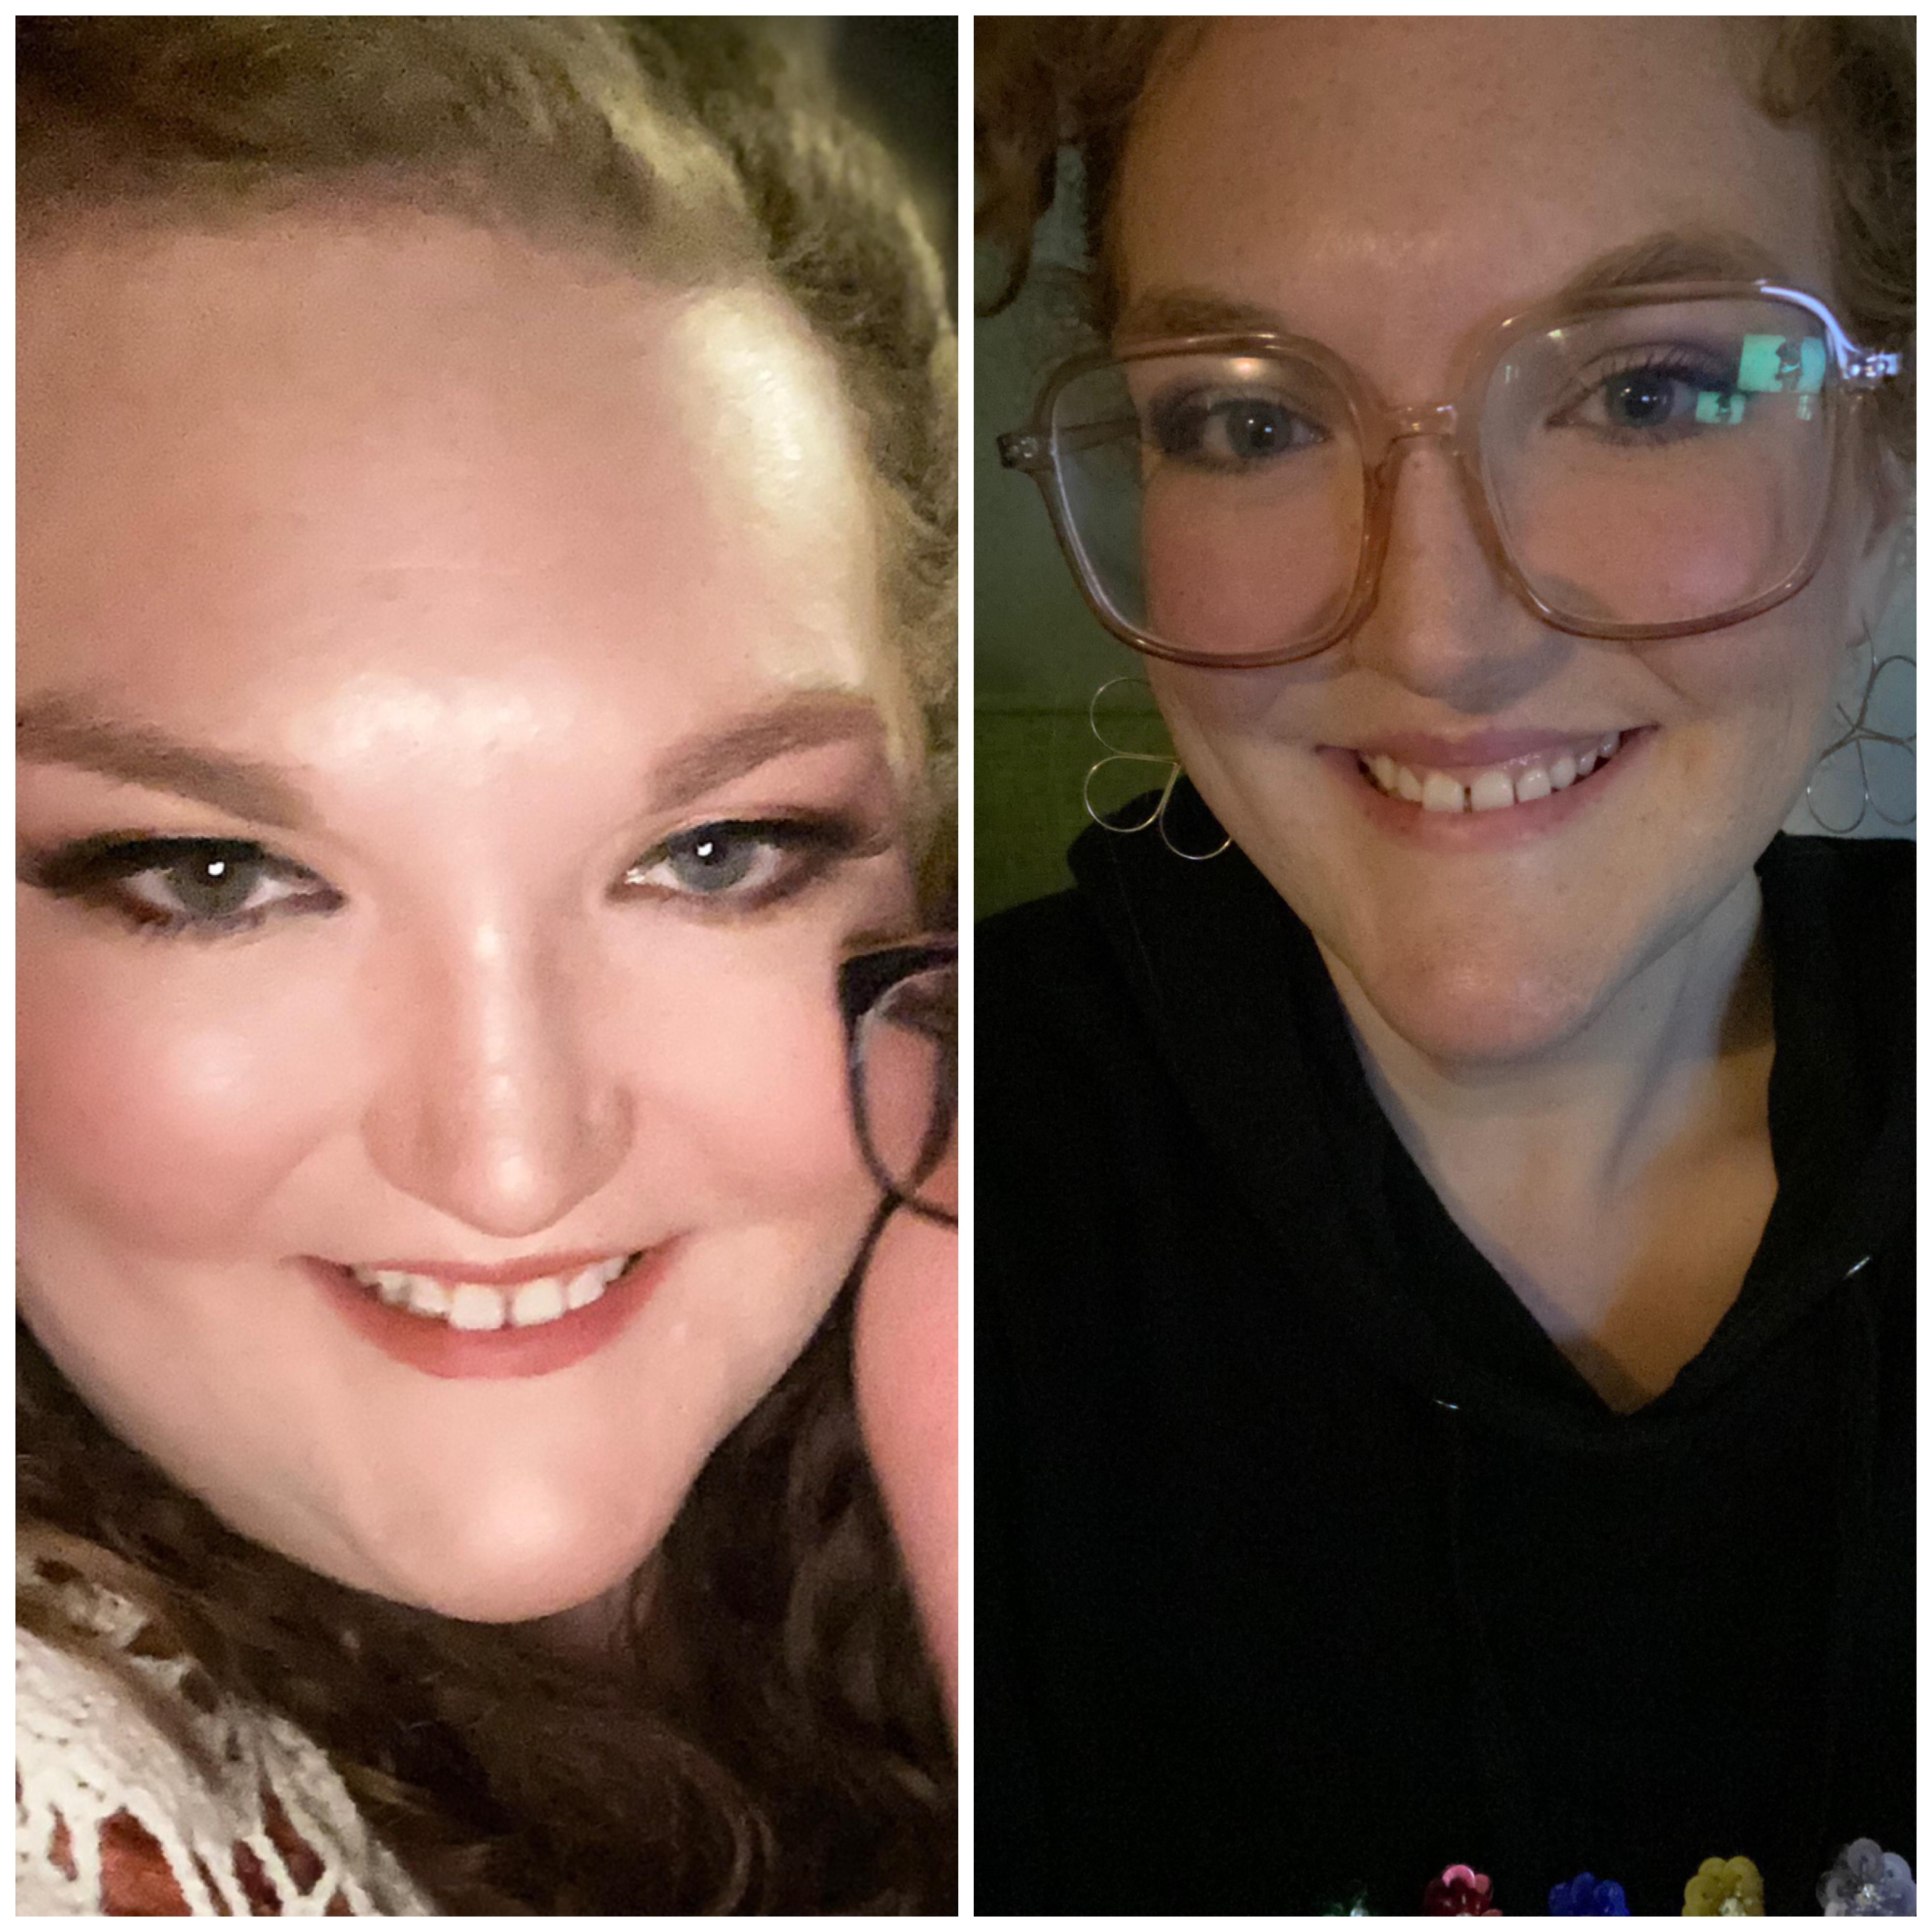 5 feet 8 Female 108 lbs Fat Loss Before and After 375 lbs to 267 lbs